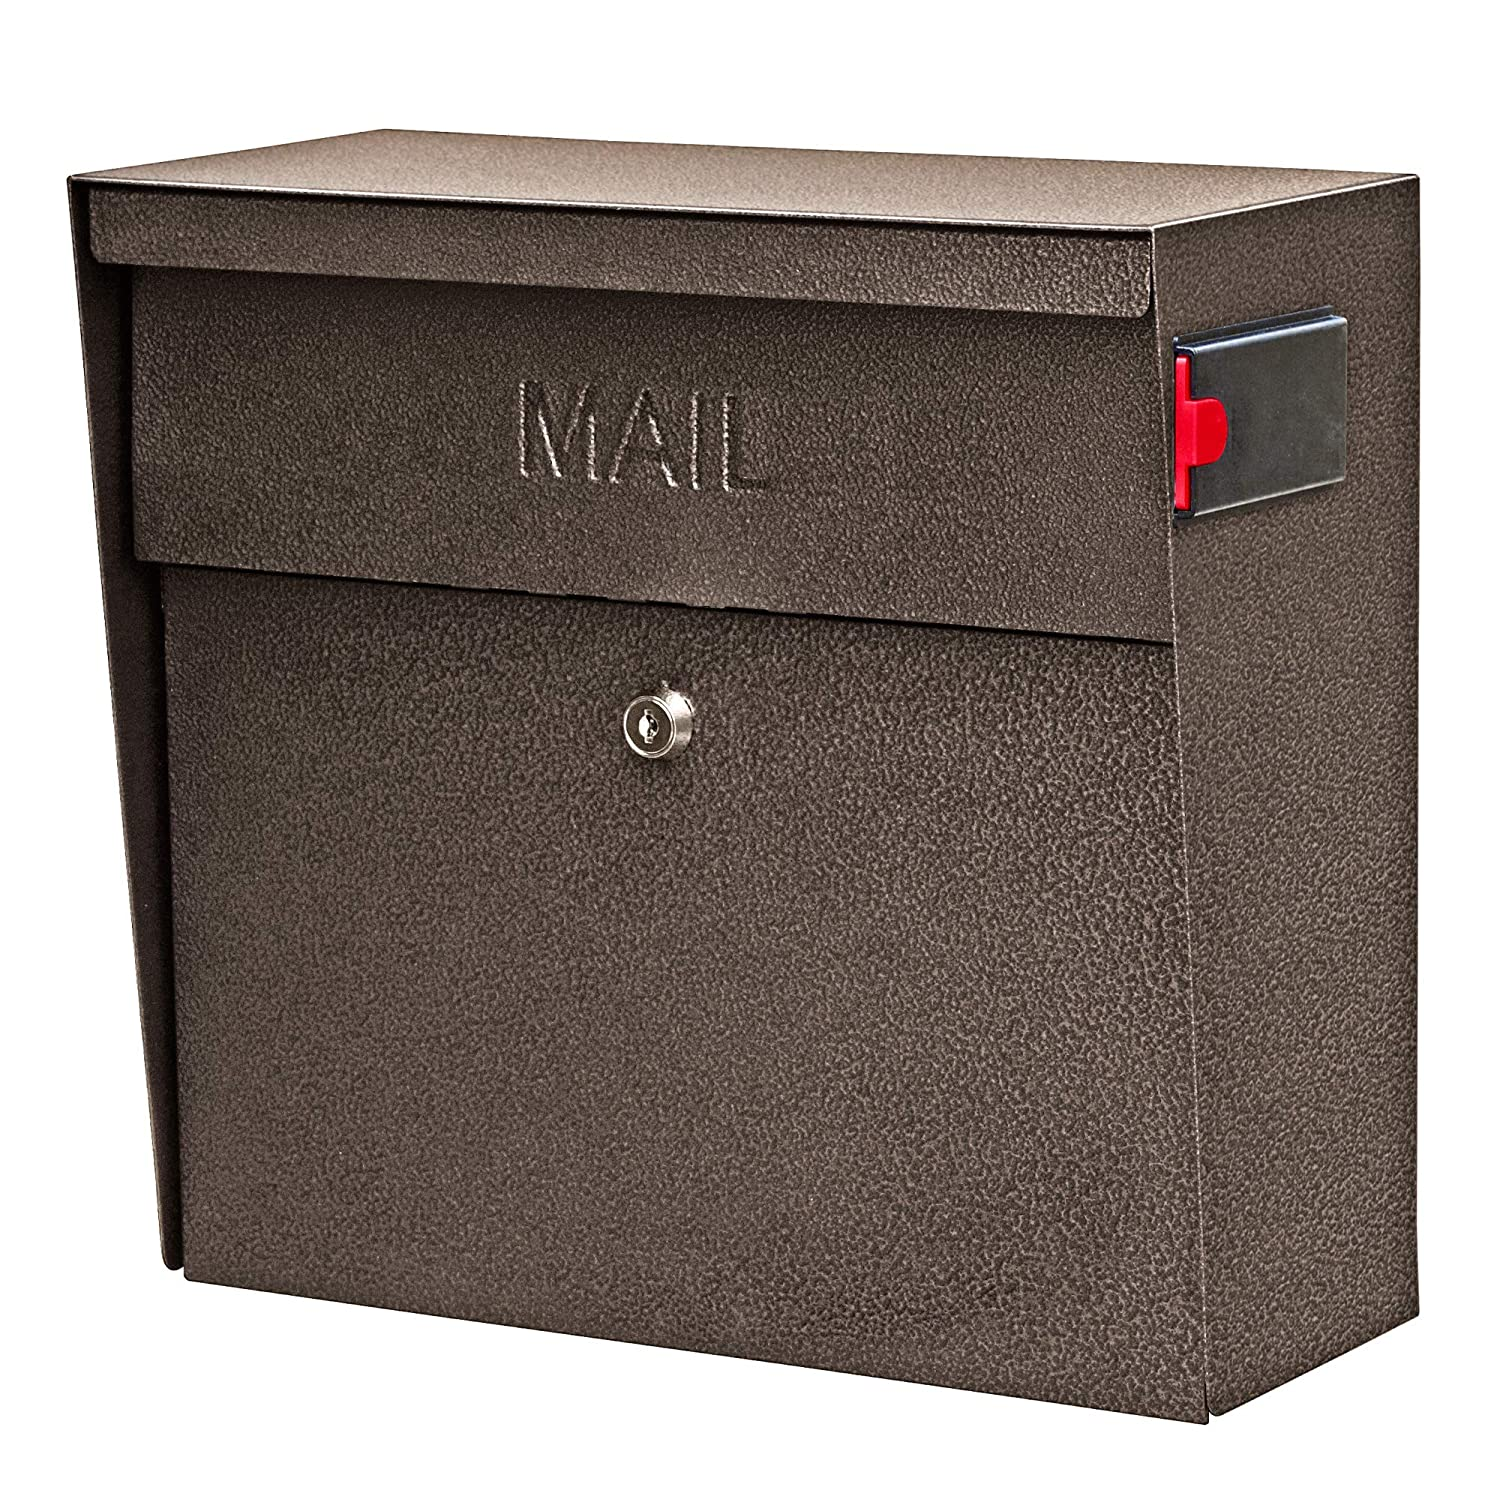 5. Mail Boss 7164 Metro Locking Wall Mount Mailbox